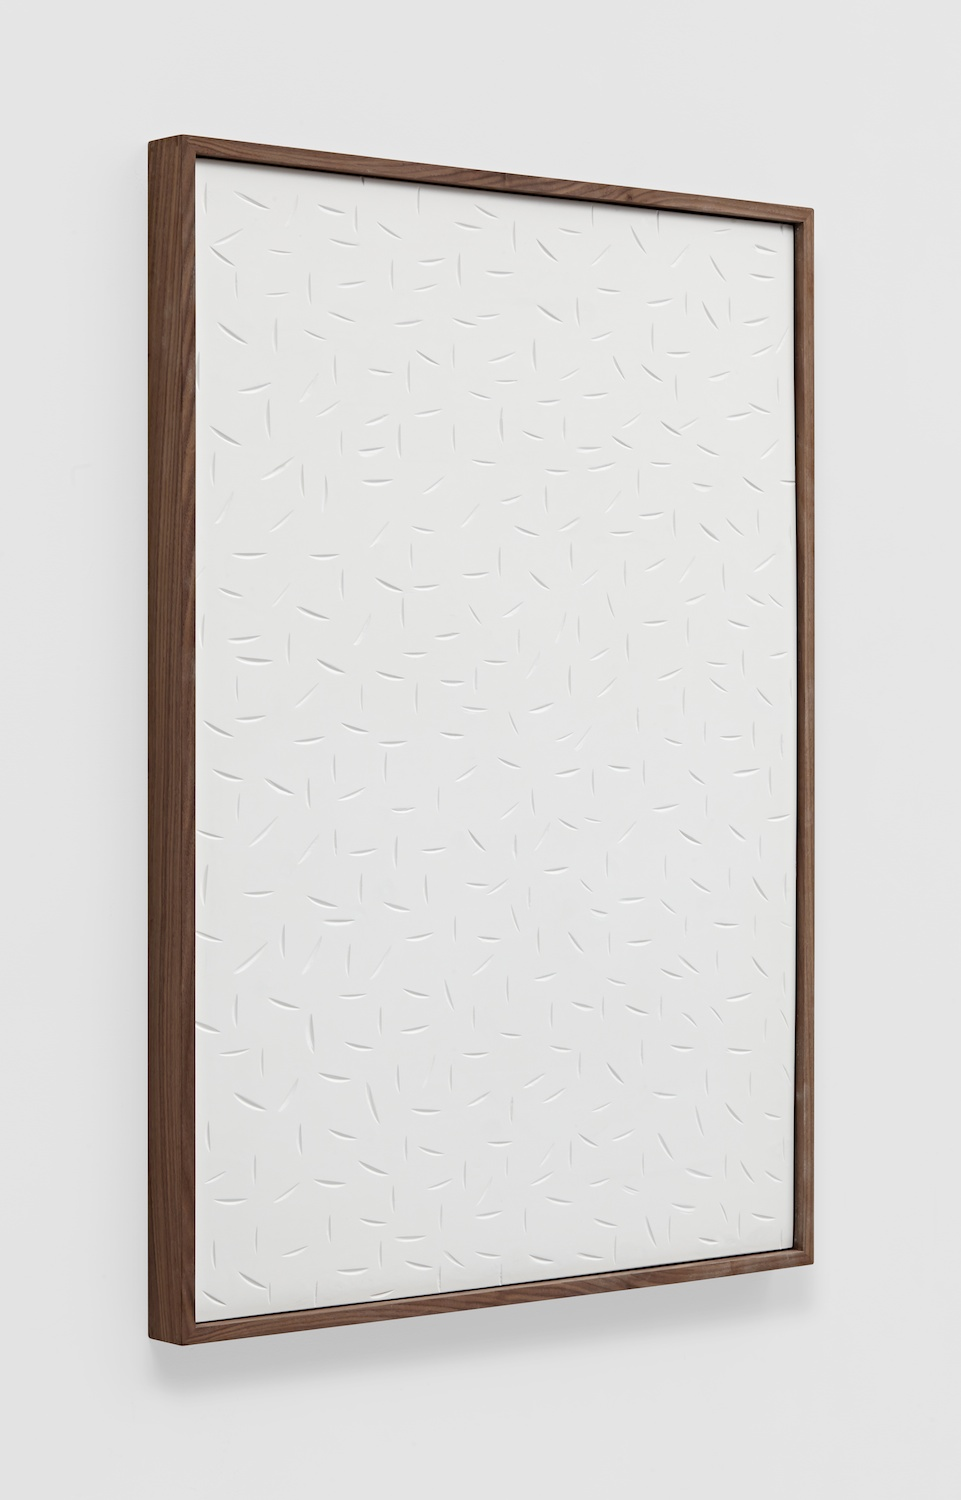 "Anthony Pearson Untitled (Etched Plaster) 2014 Pigmented hydrocal in walnut frame 43 1/2"" x 31 1/2"" x 2 1/2"" AP357"